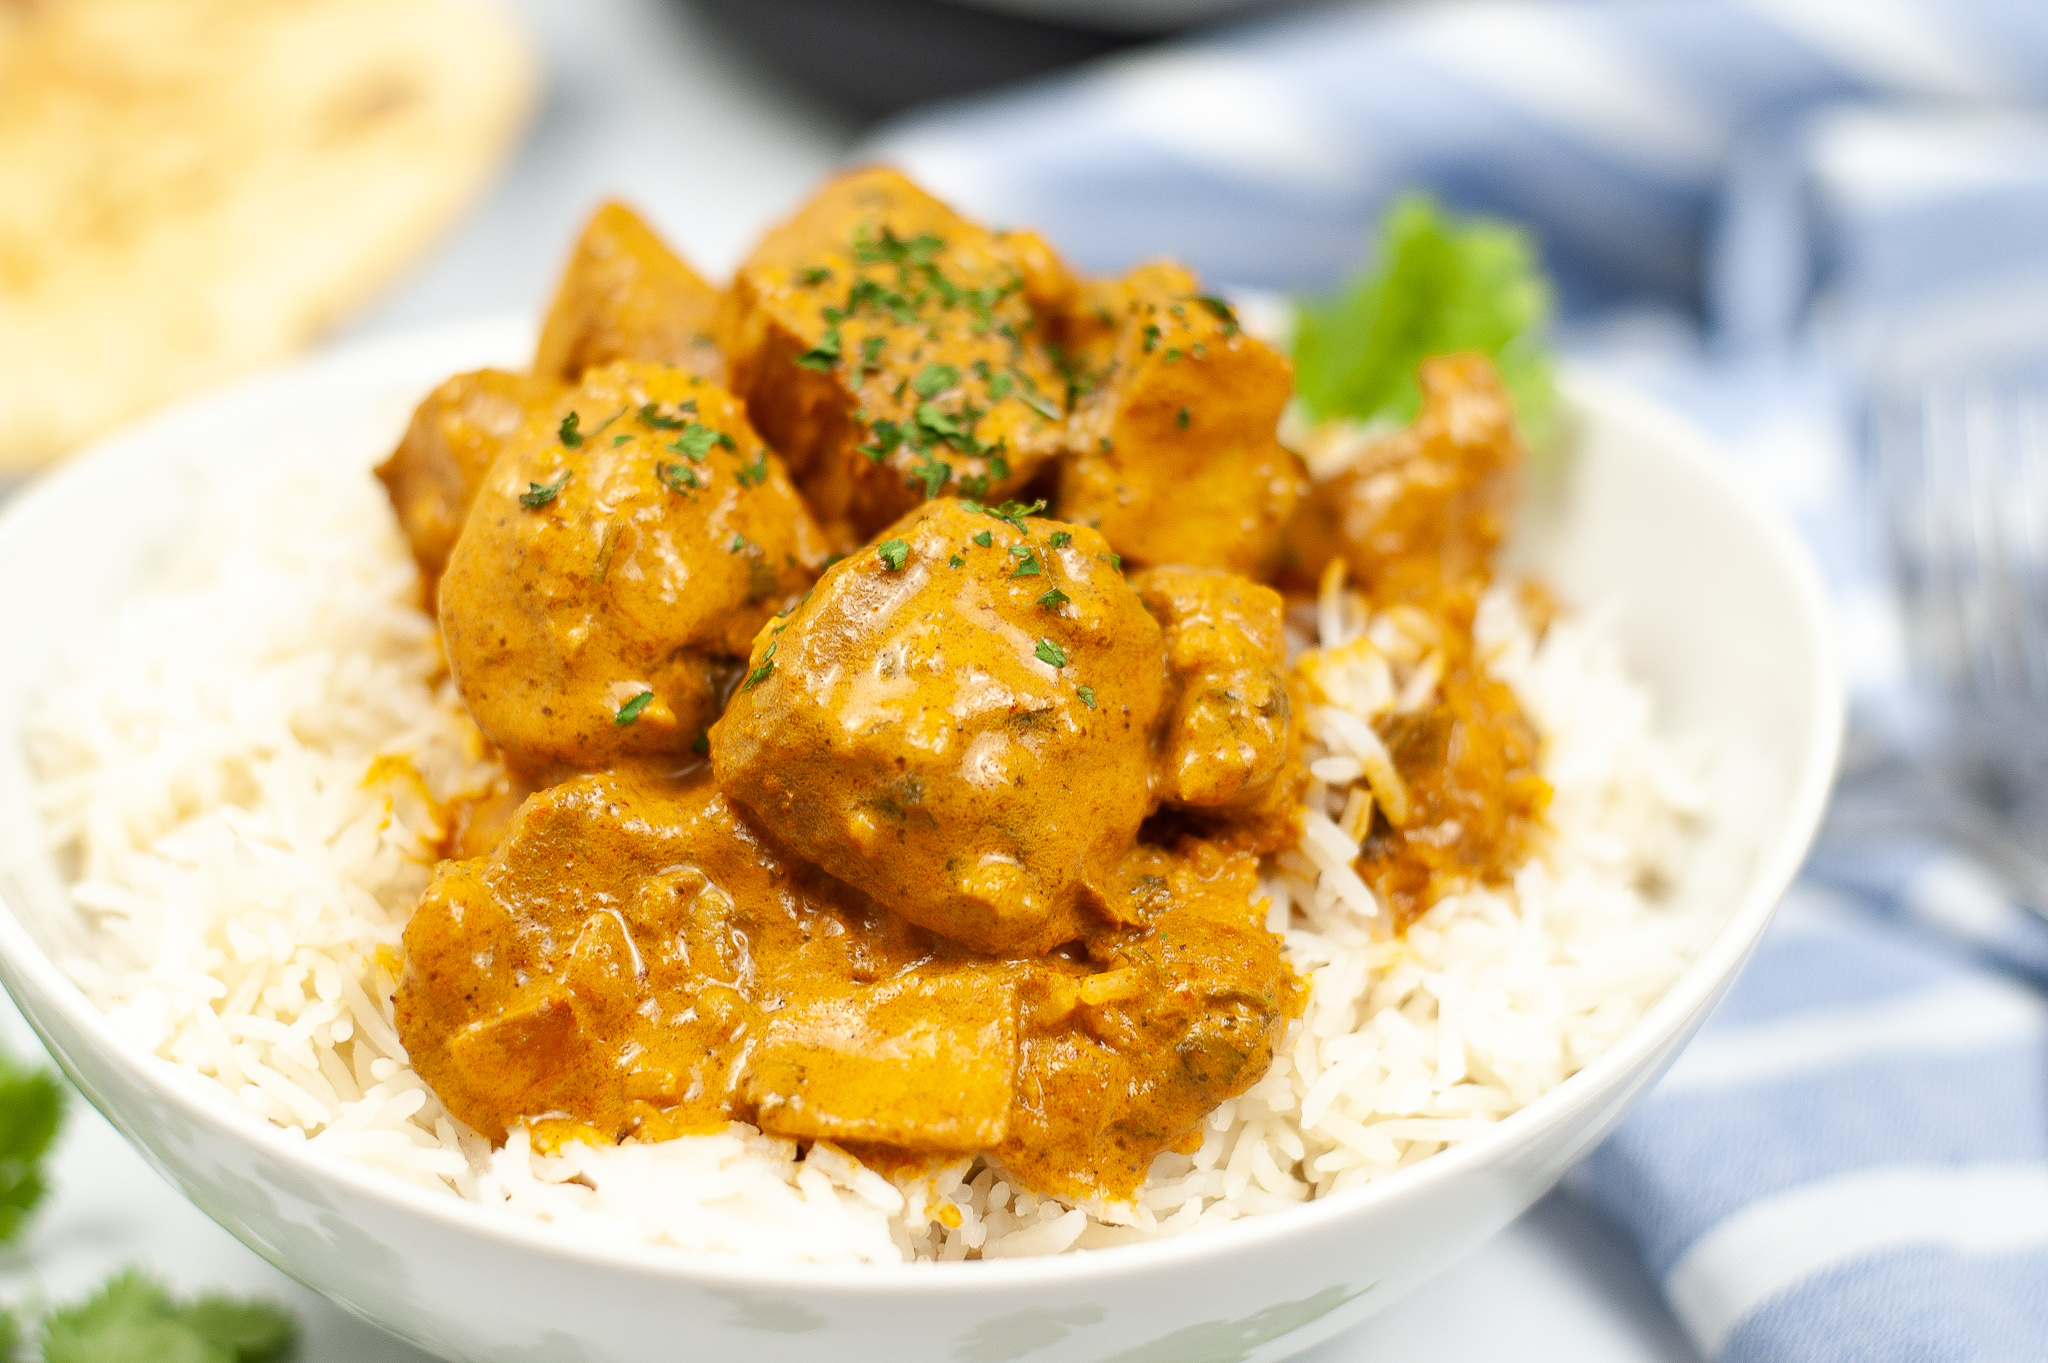 Close up of Butter Chicken over white rice in a dish.